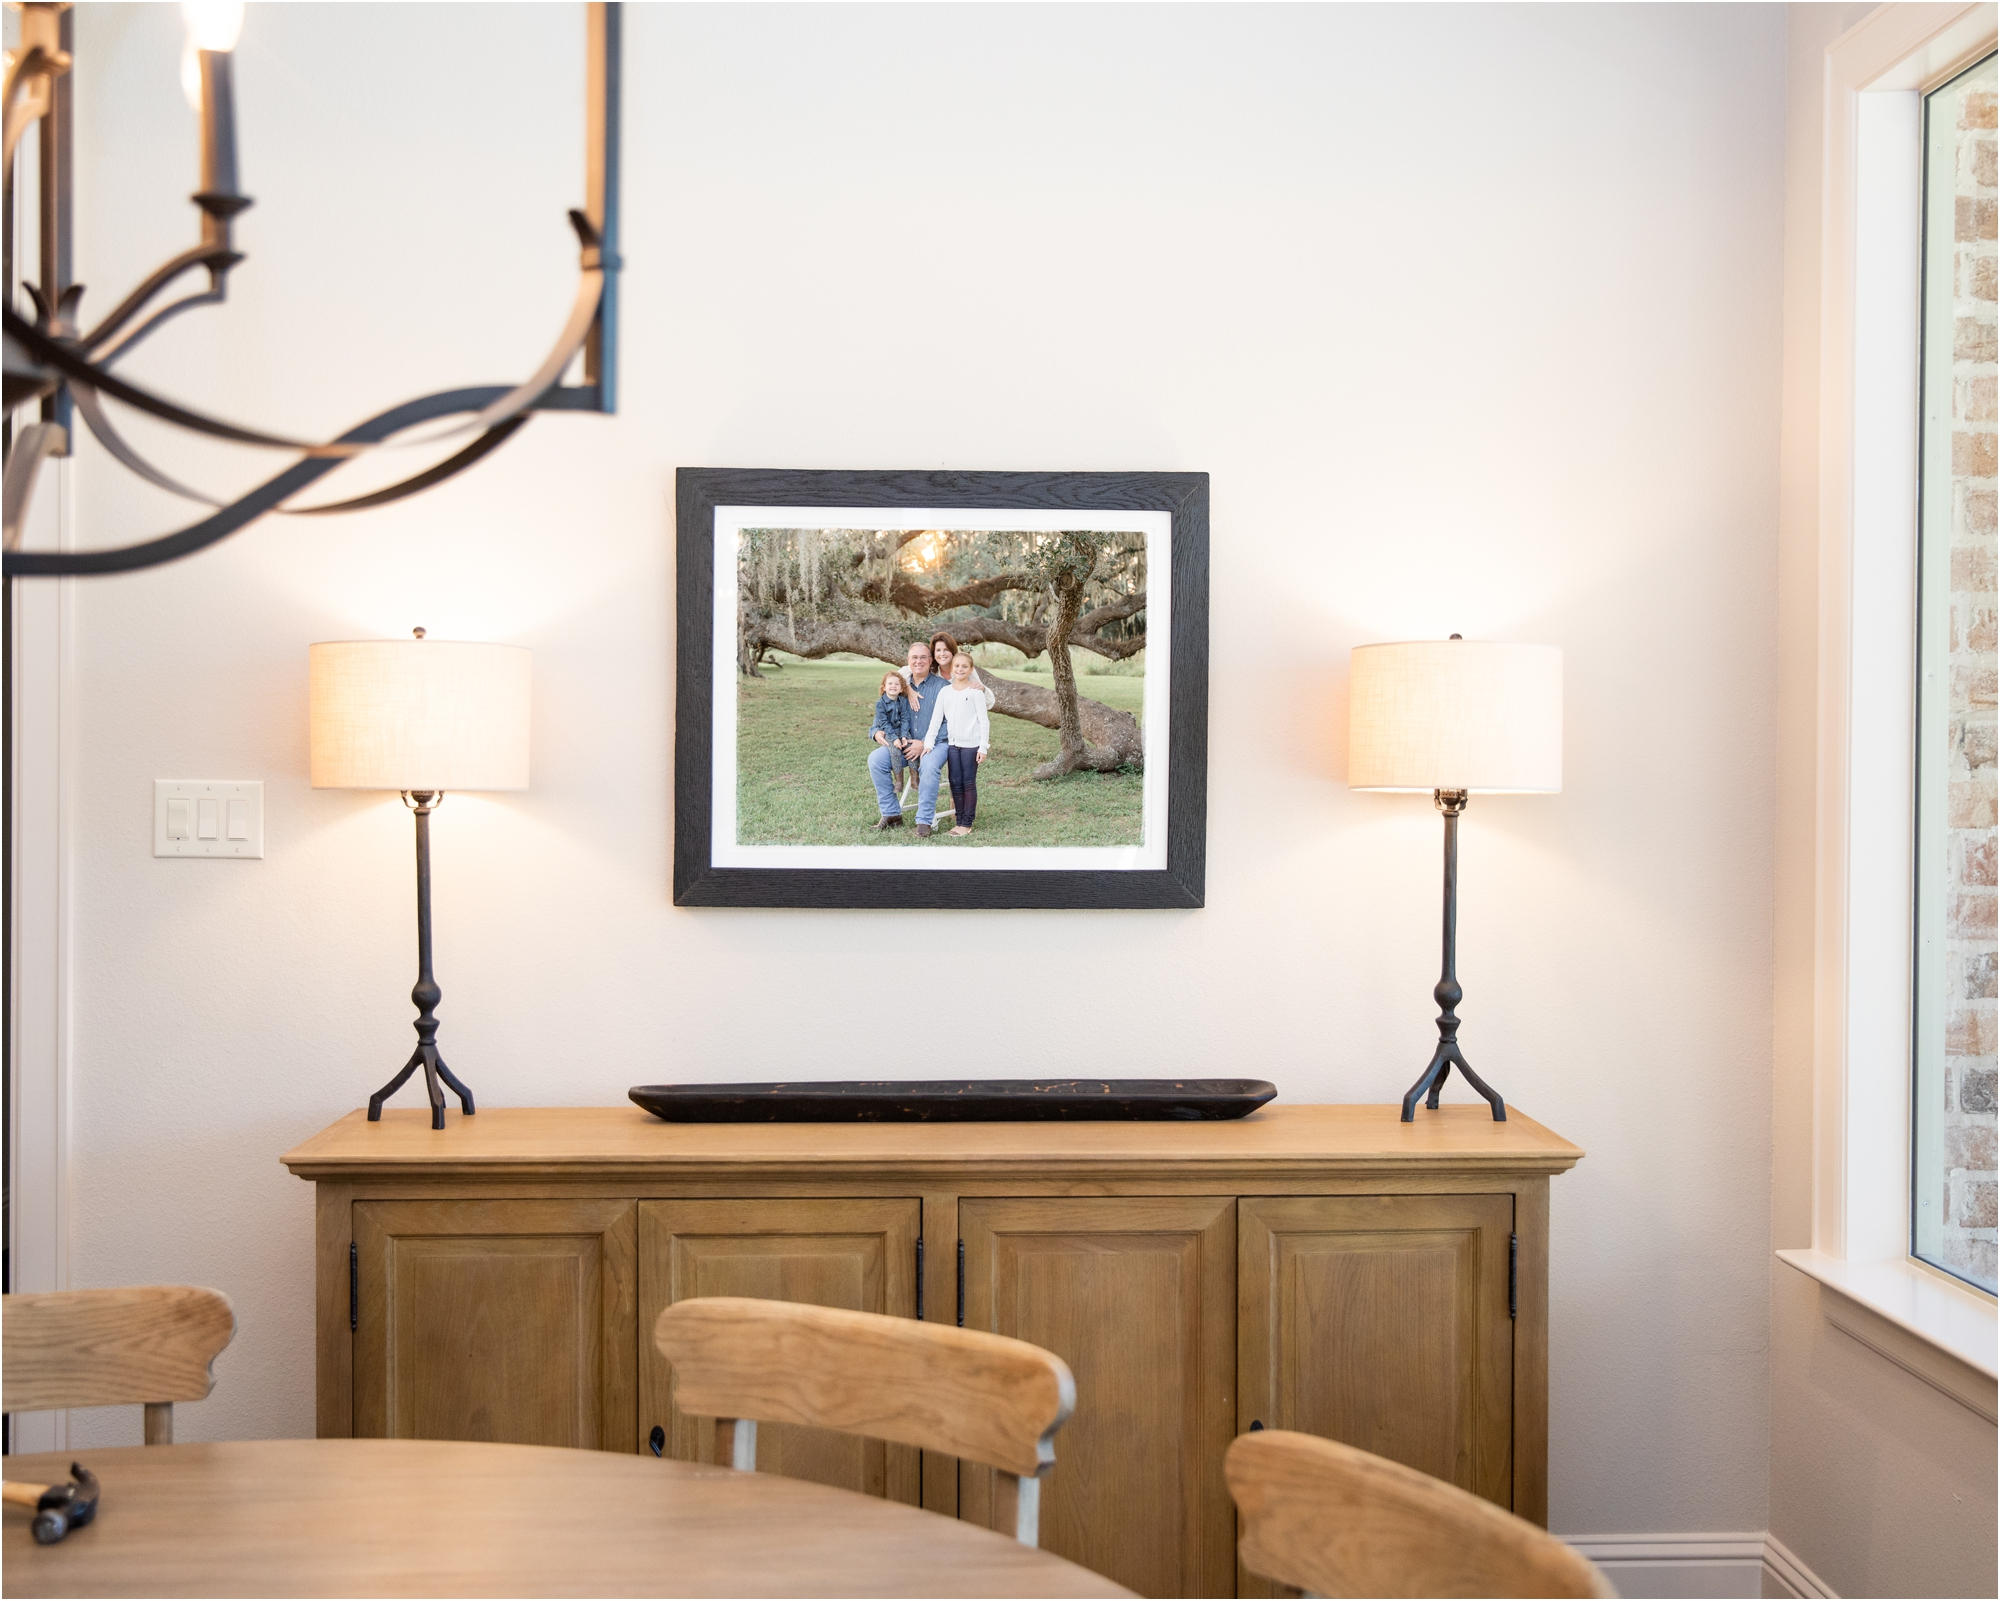 Custom statement wall art on client's wall designed and created by Lifetime of Clicks Photography.